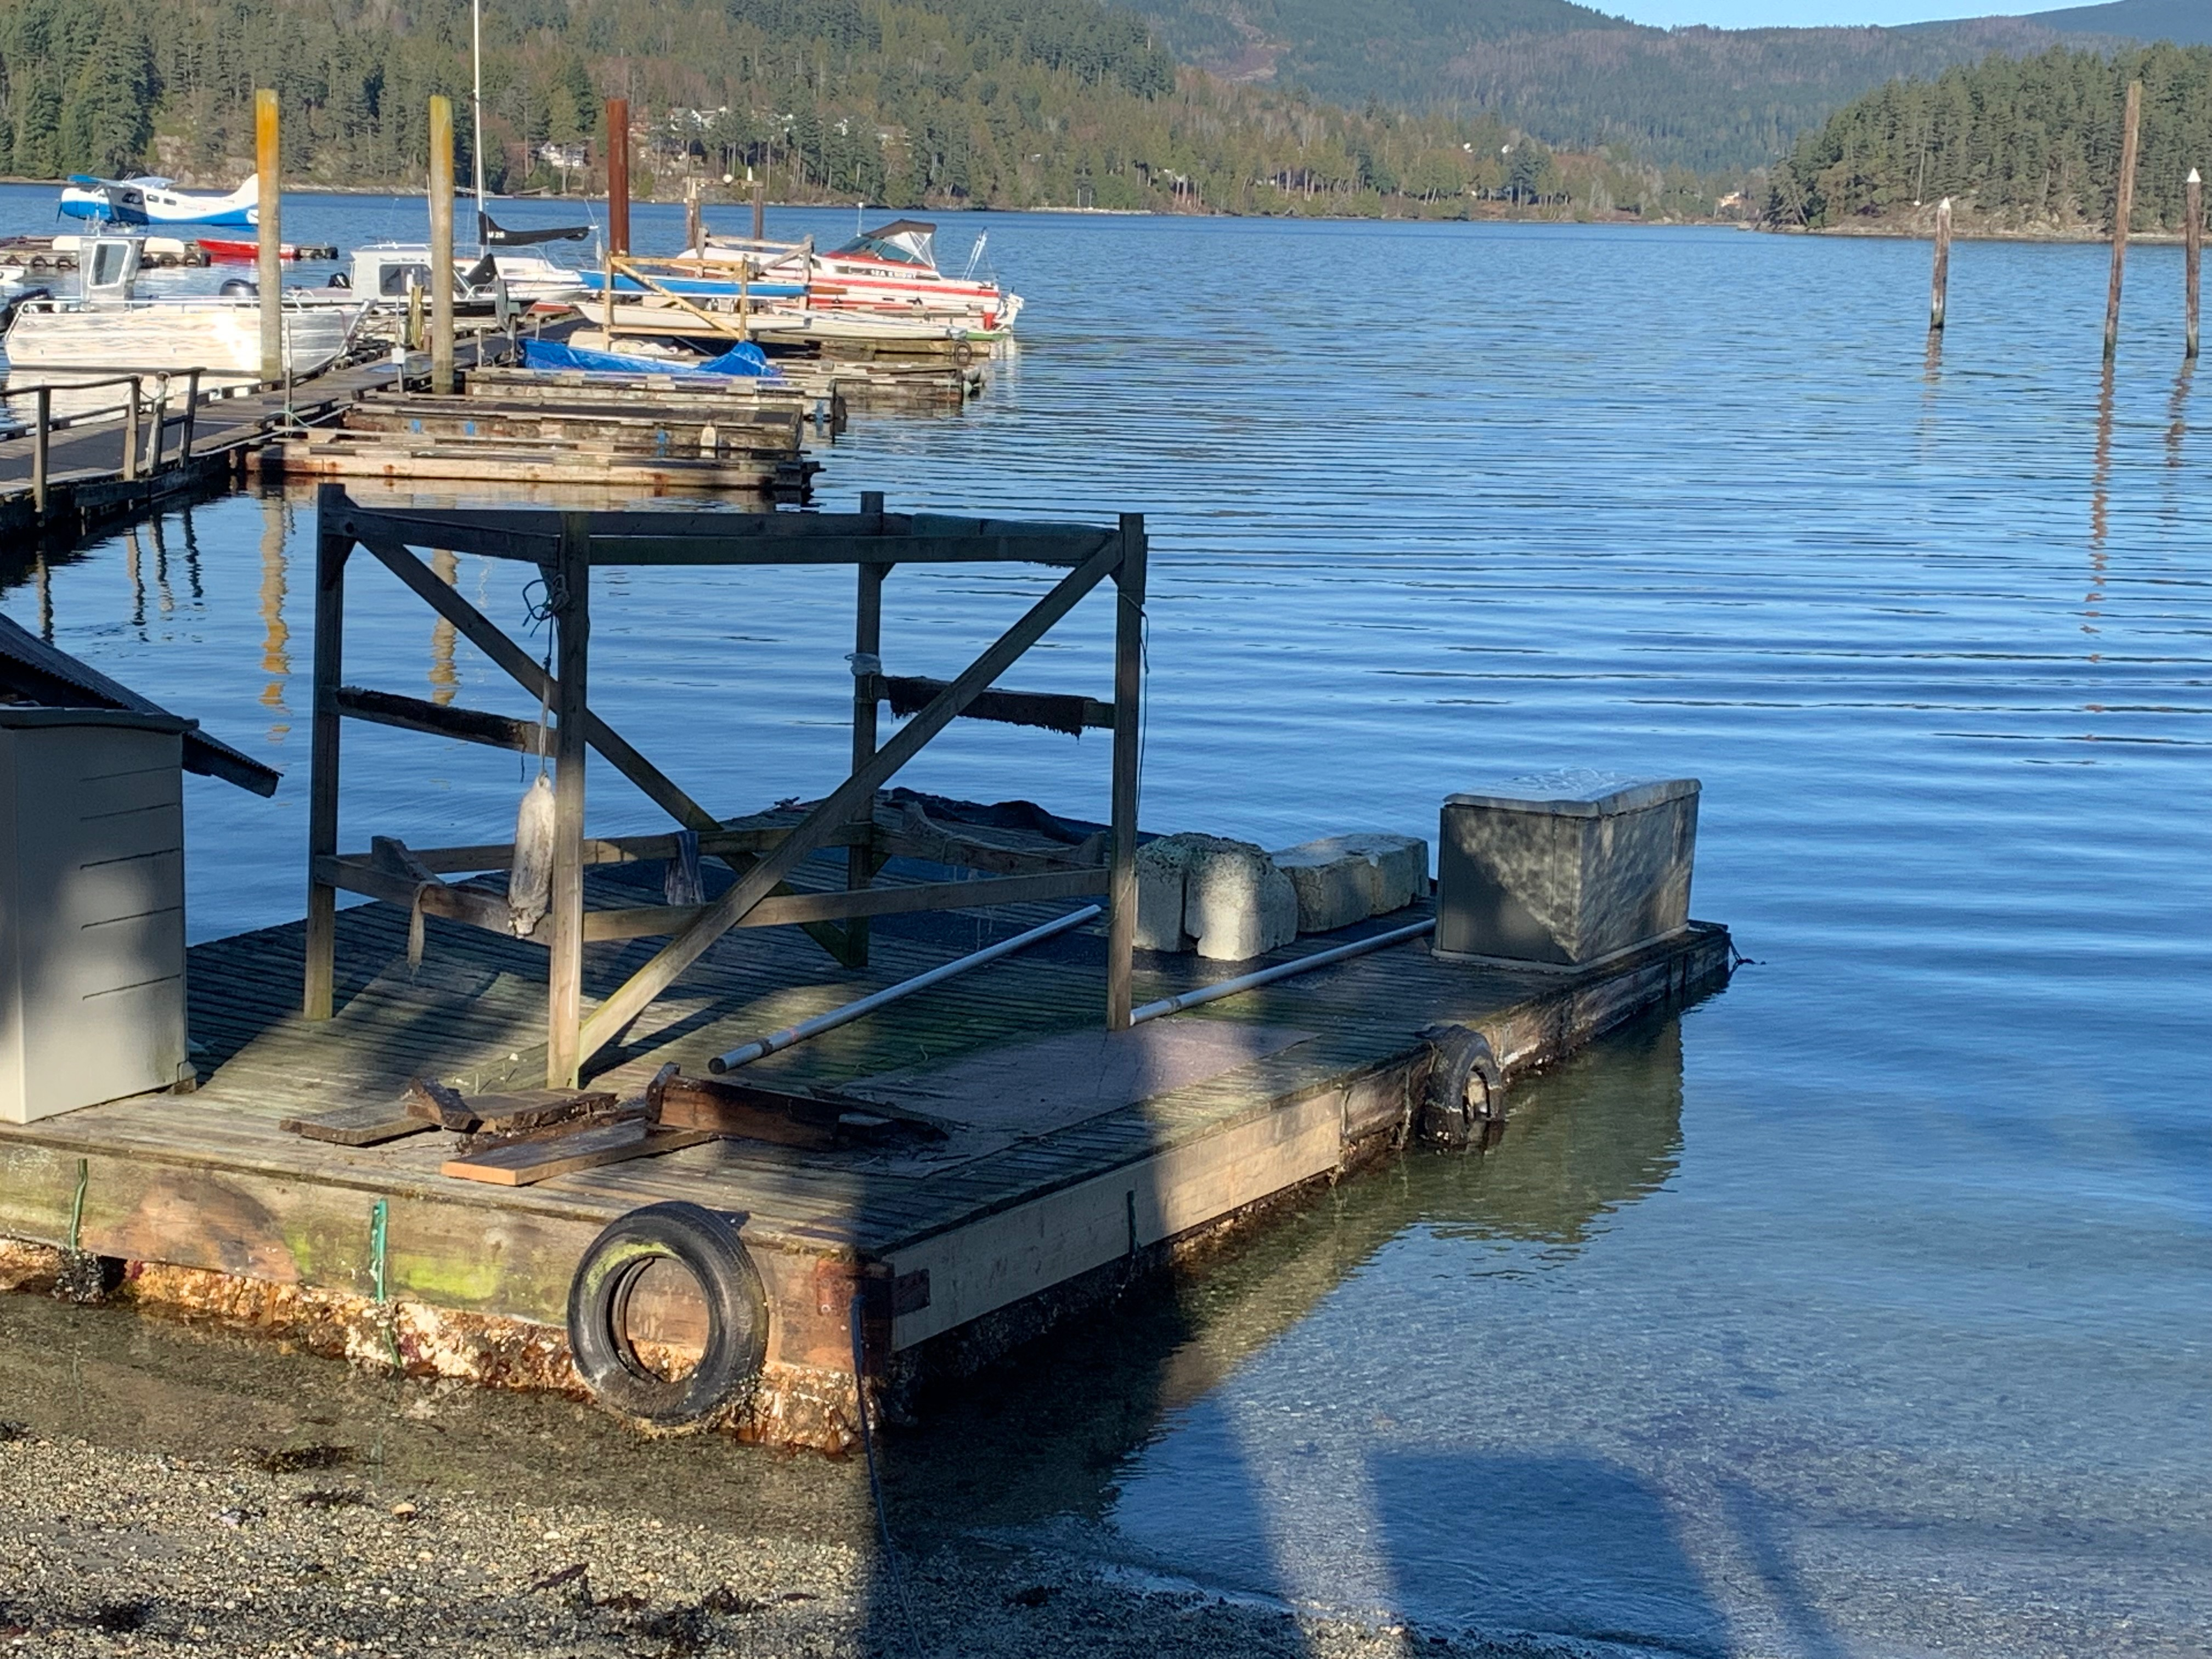 One of our three floats on the shore of Porpoise Bay.